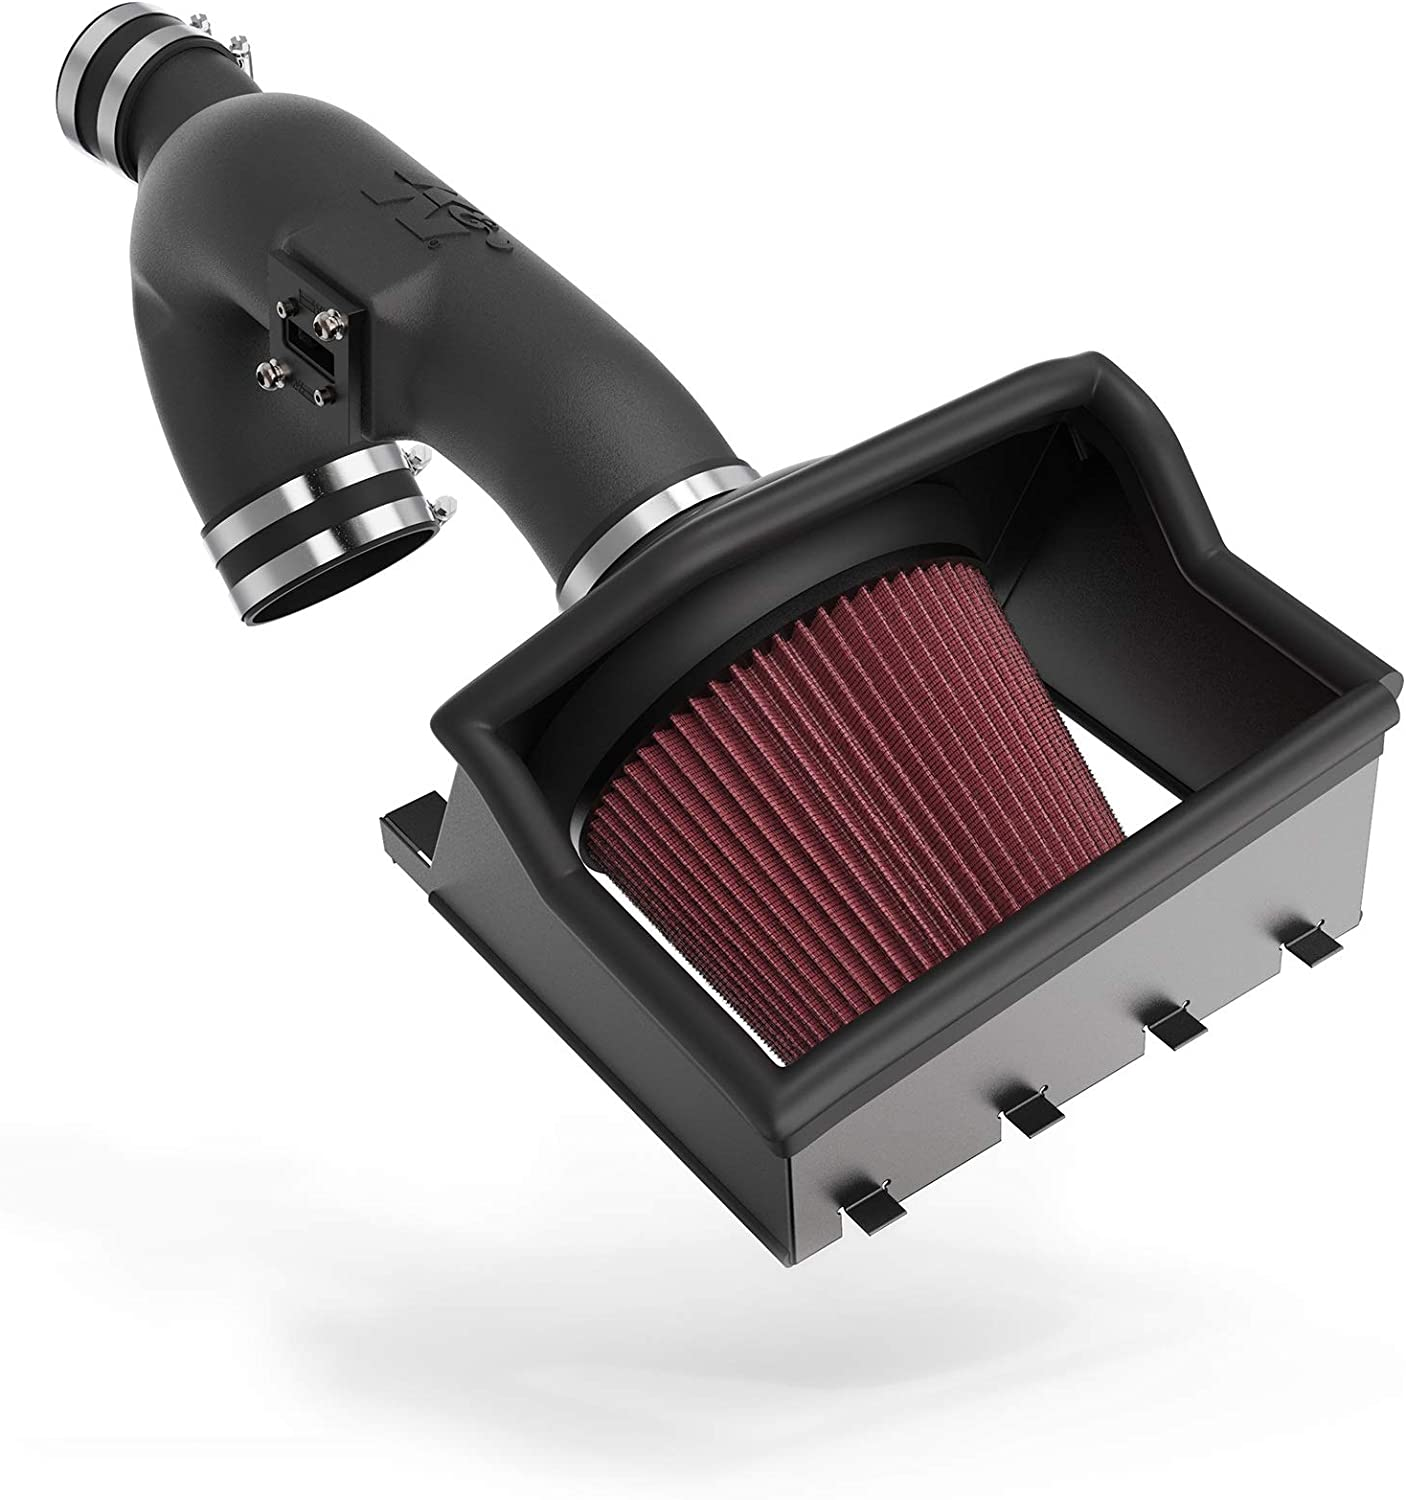 KN free Cold trend rank Air Intake Kit: High Performance Increase Horsepower: